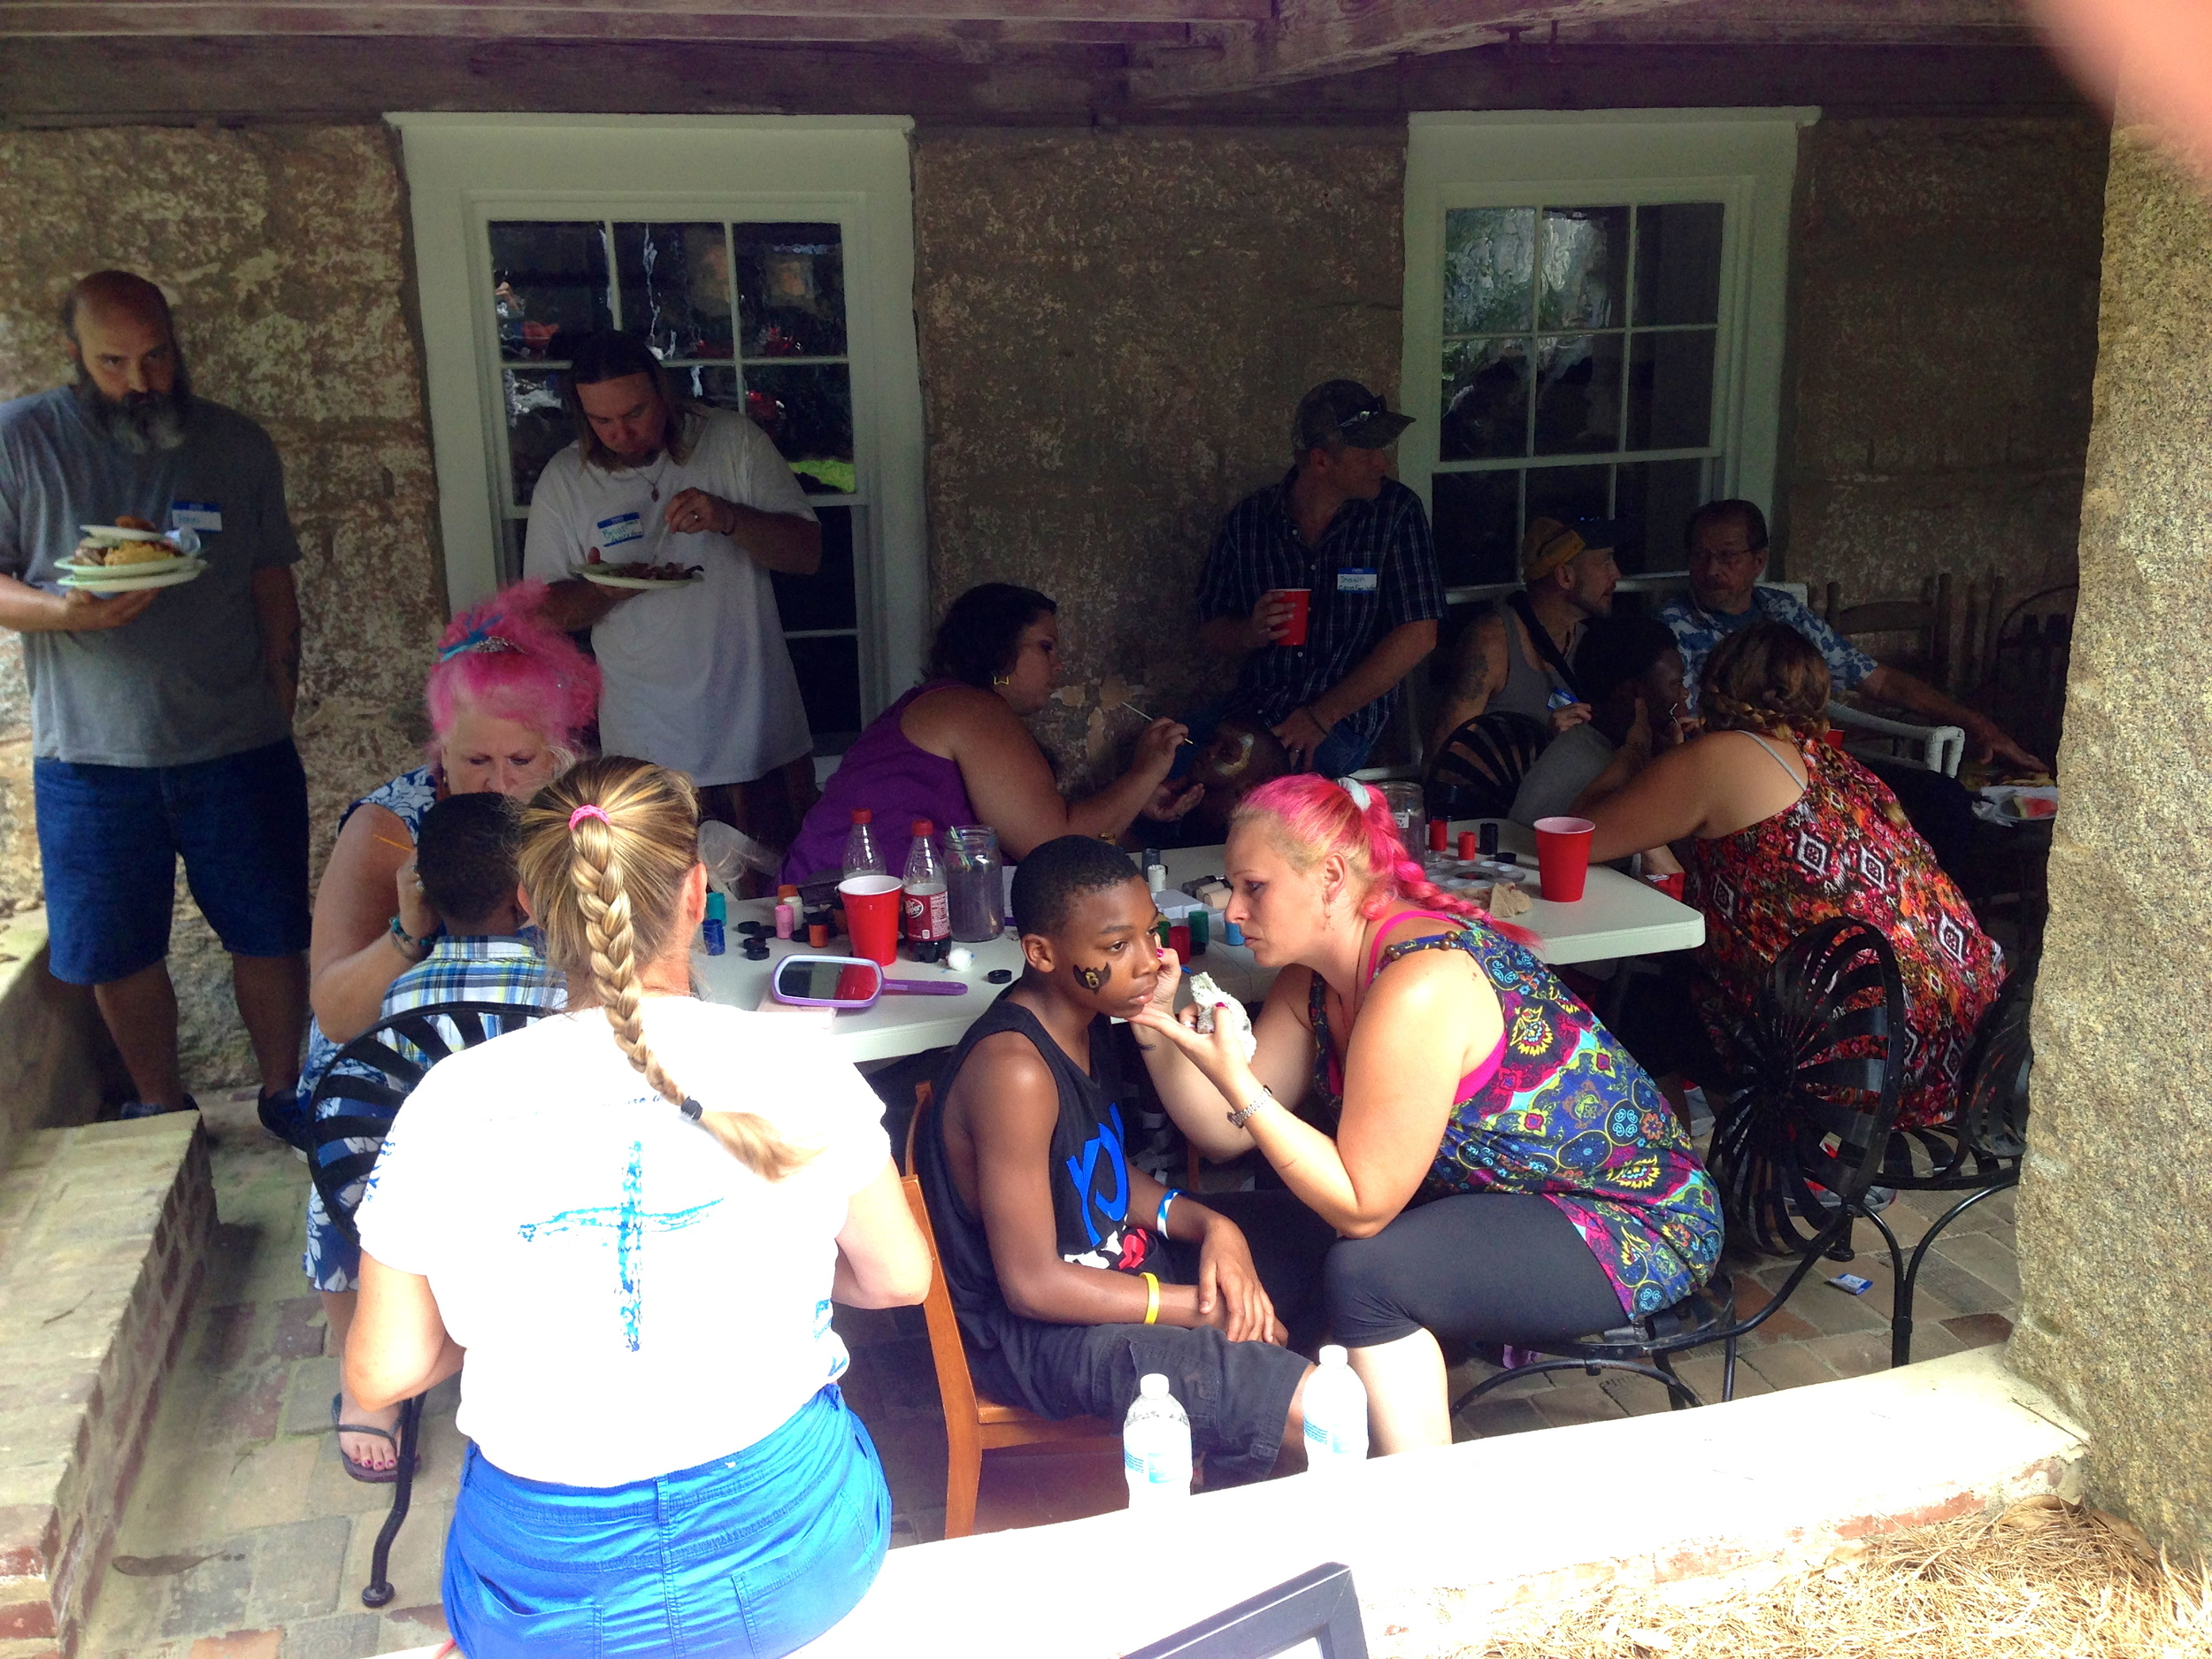 The Oasis Family Farm folks worked long and hard to accommodate all children who wanted to have their faces painted.